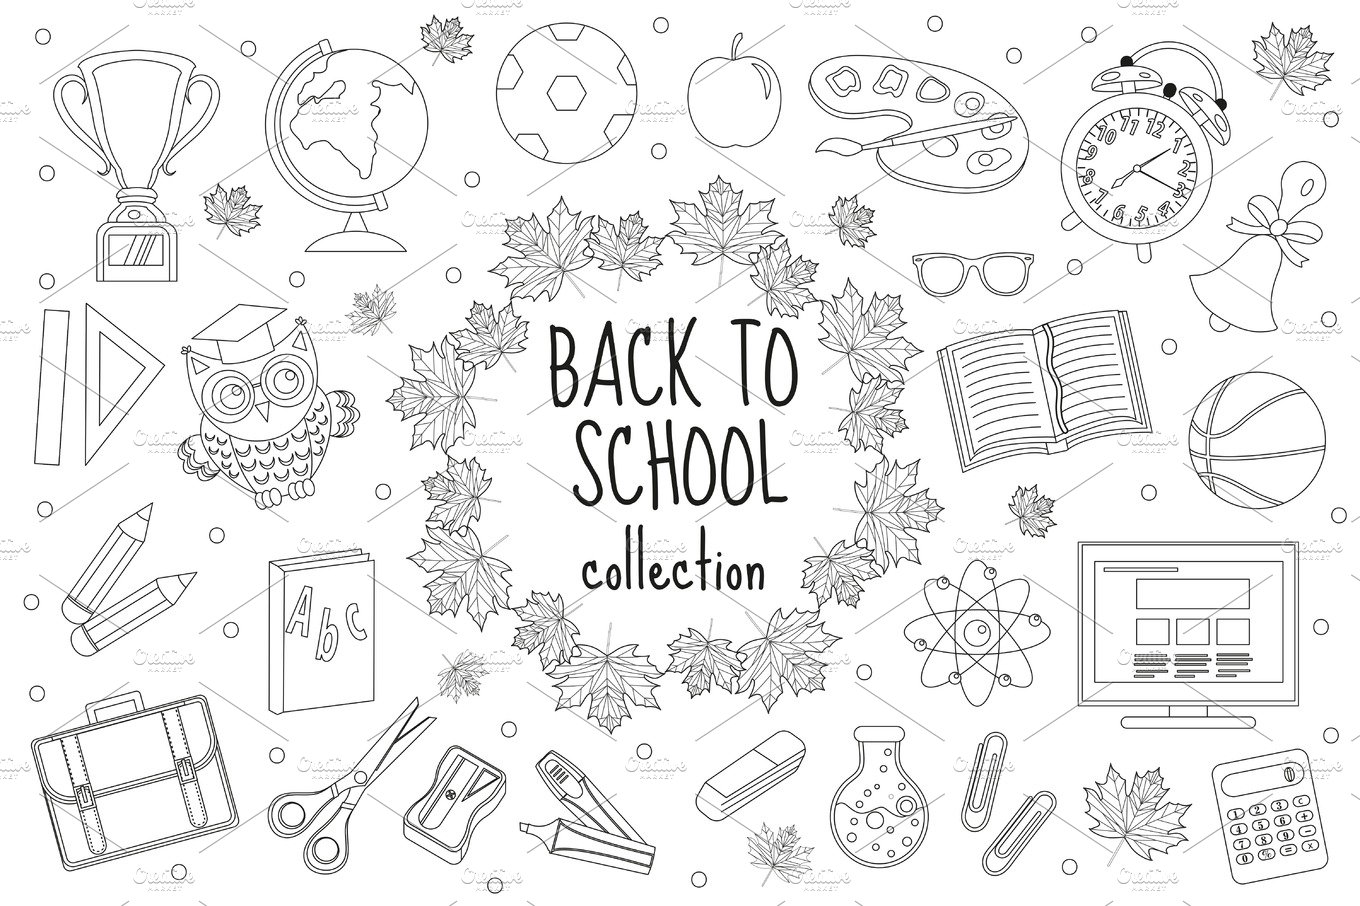 Back to school set of icons, line style. Education